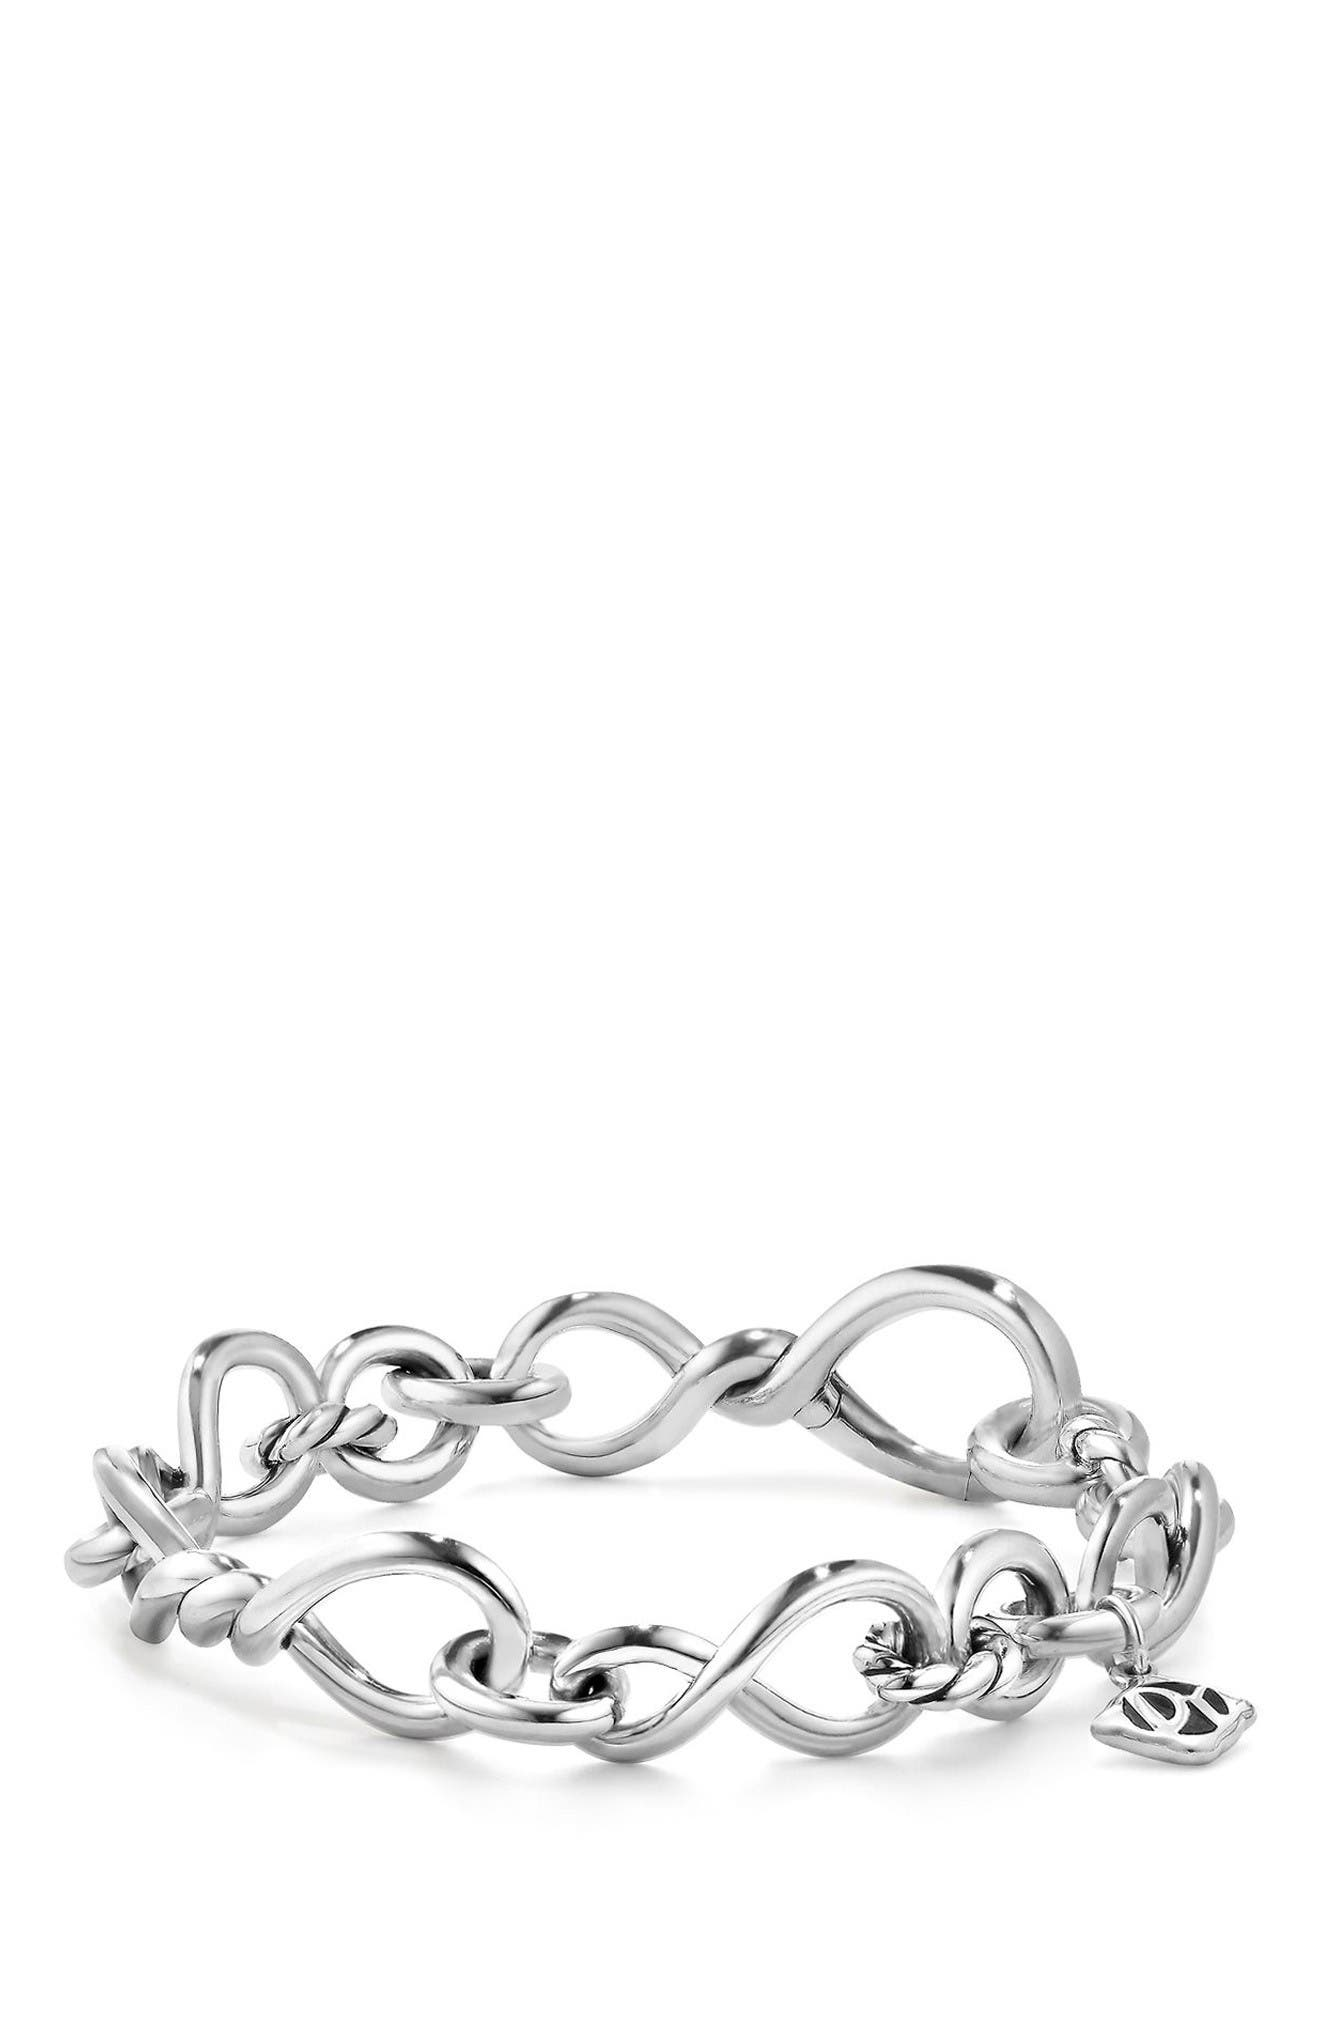 David Yurman Continuance Medium Chain Bracelet